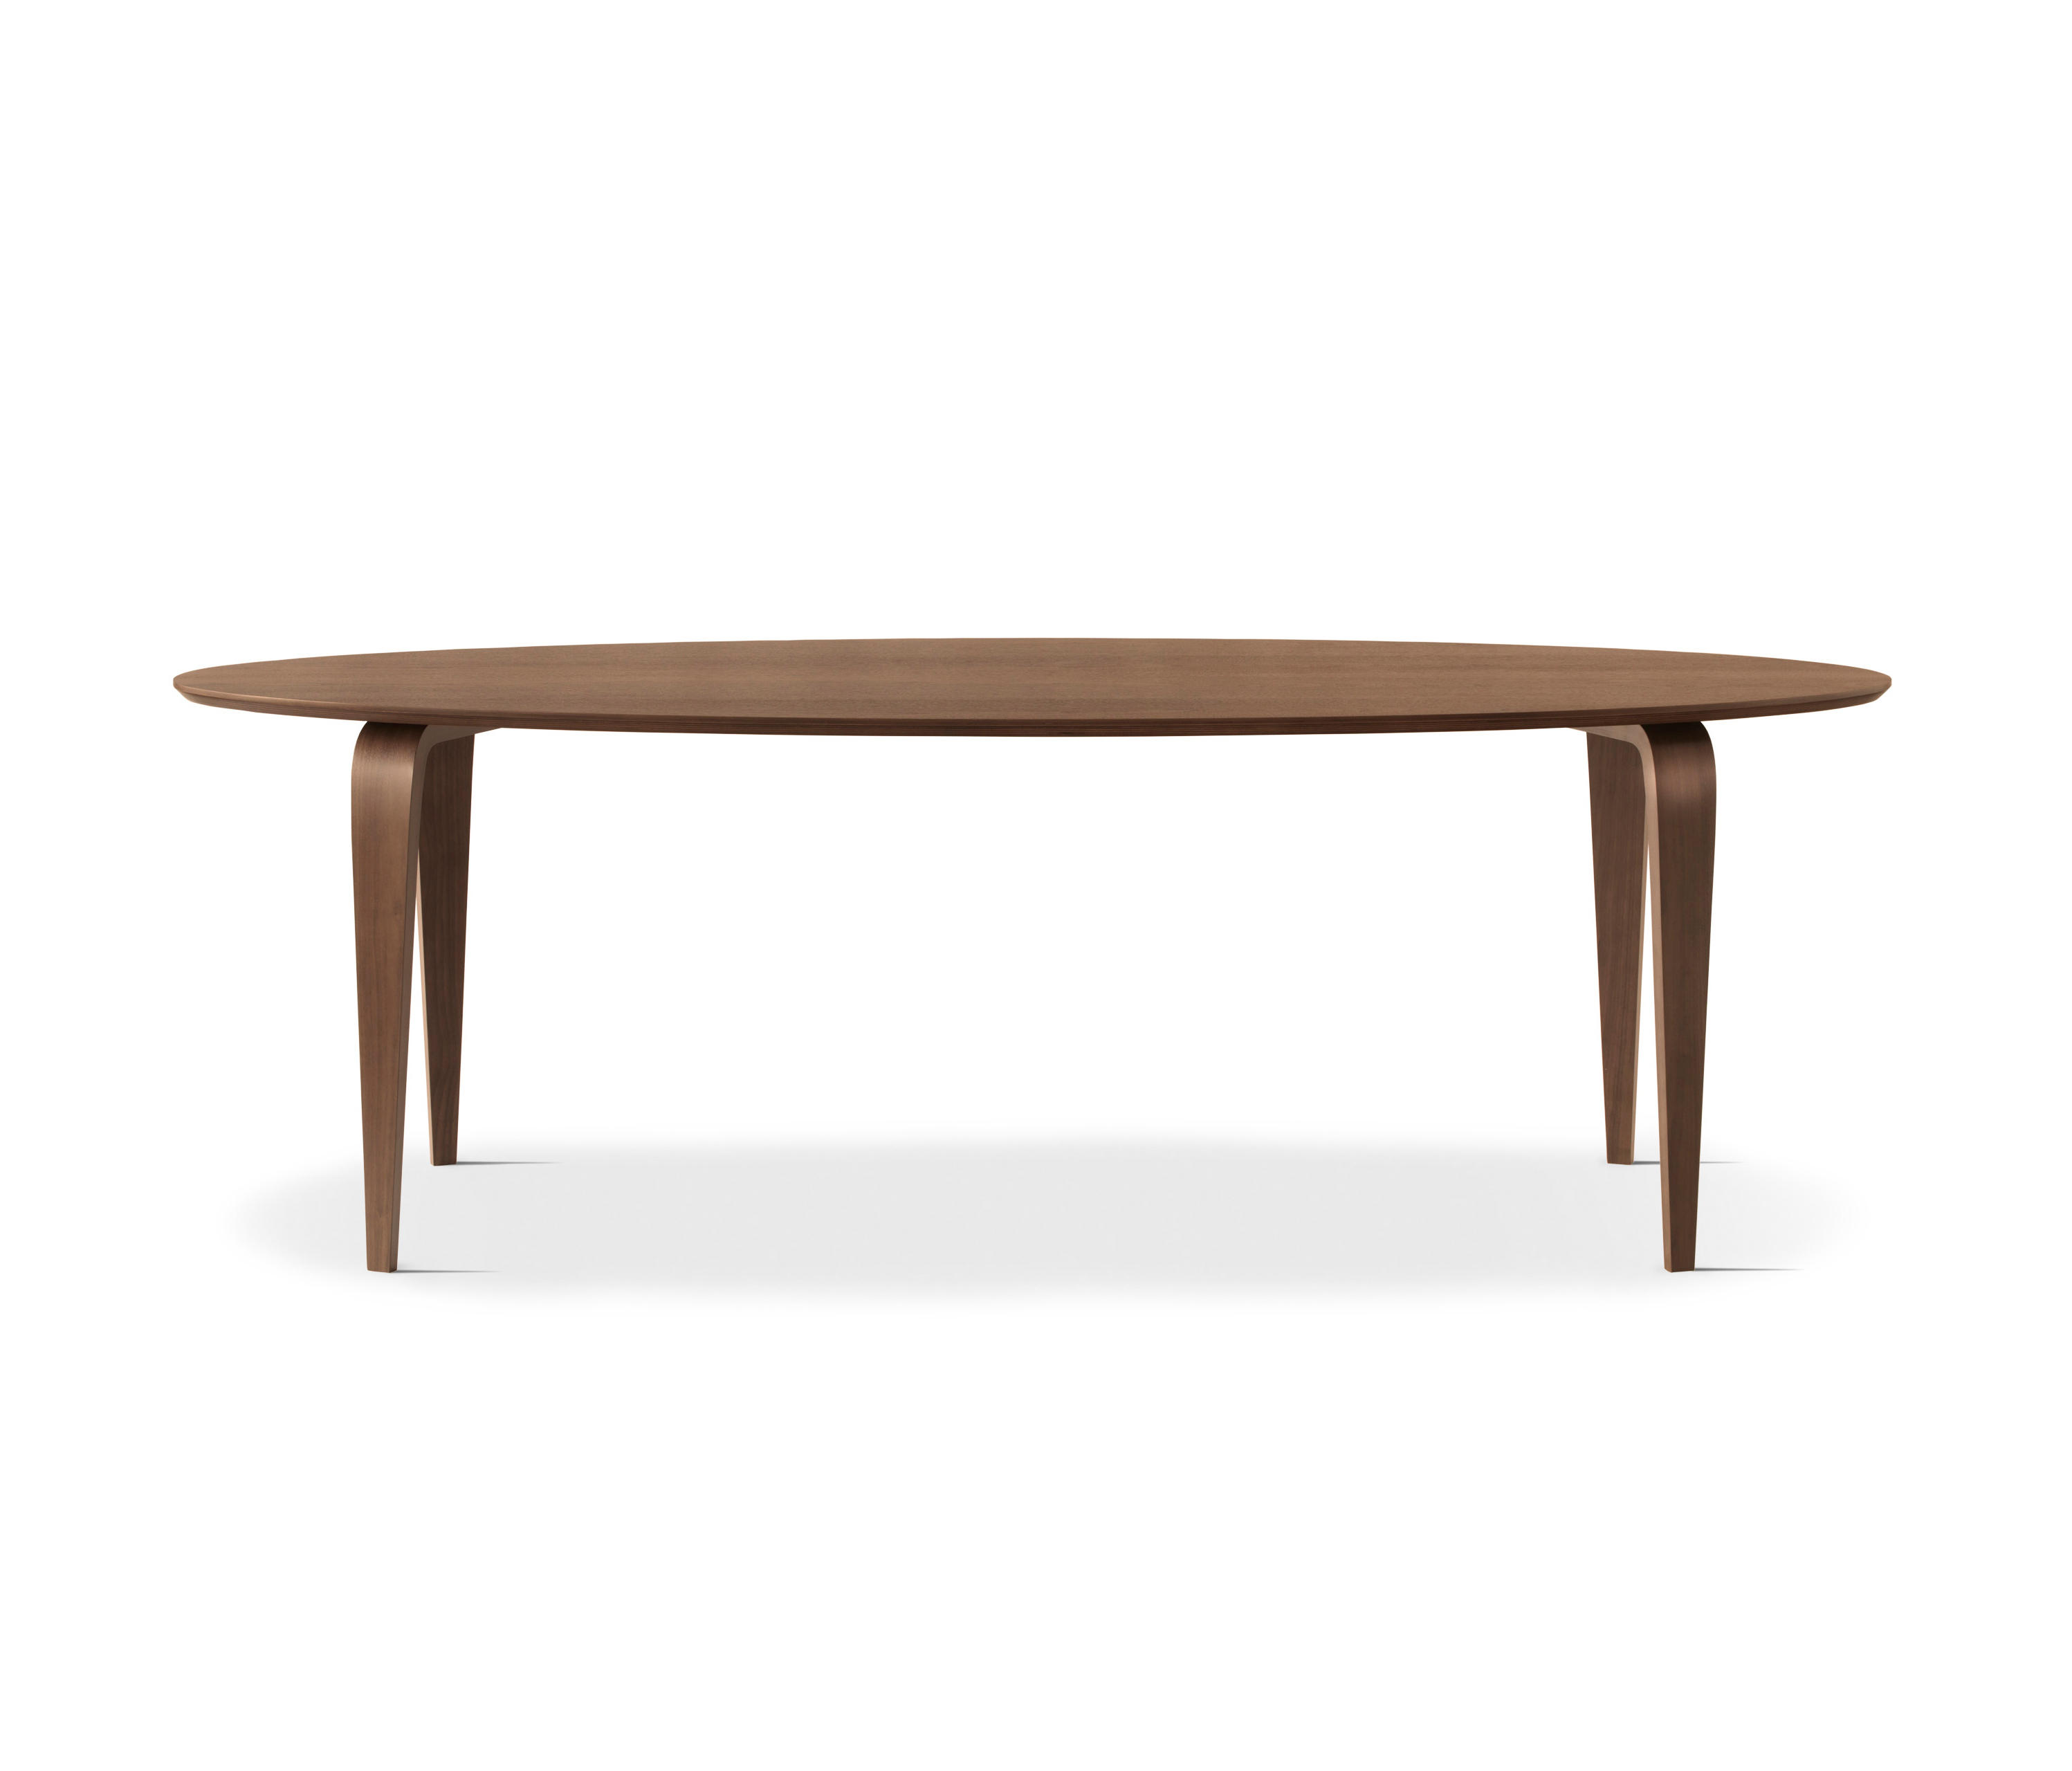 Cherner Oval Table Designer Furniture